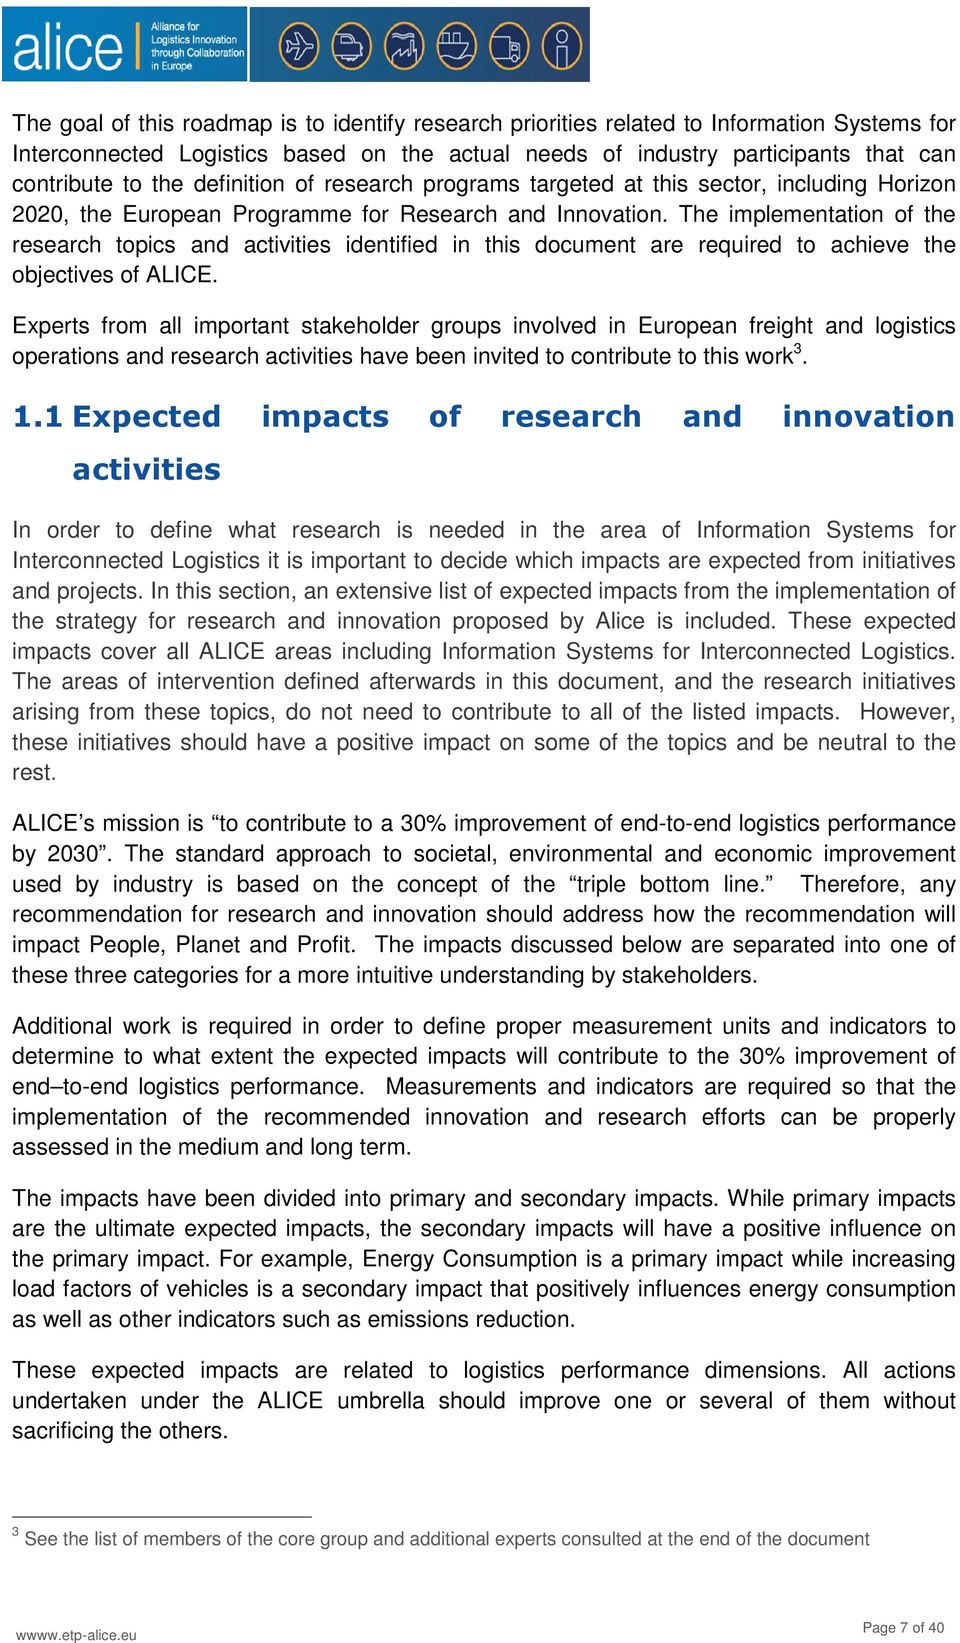 The implementation of the research topics and activities identified in this document are required to achieve the objectives of ALICE.